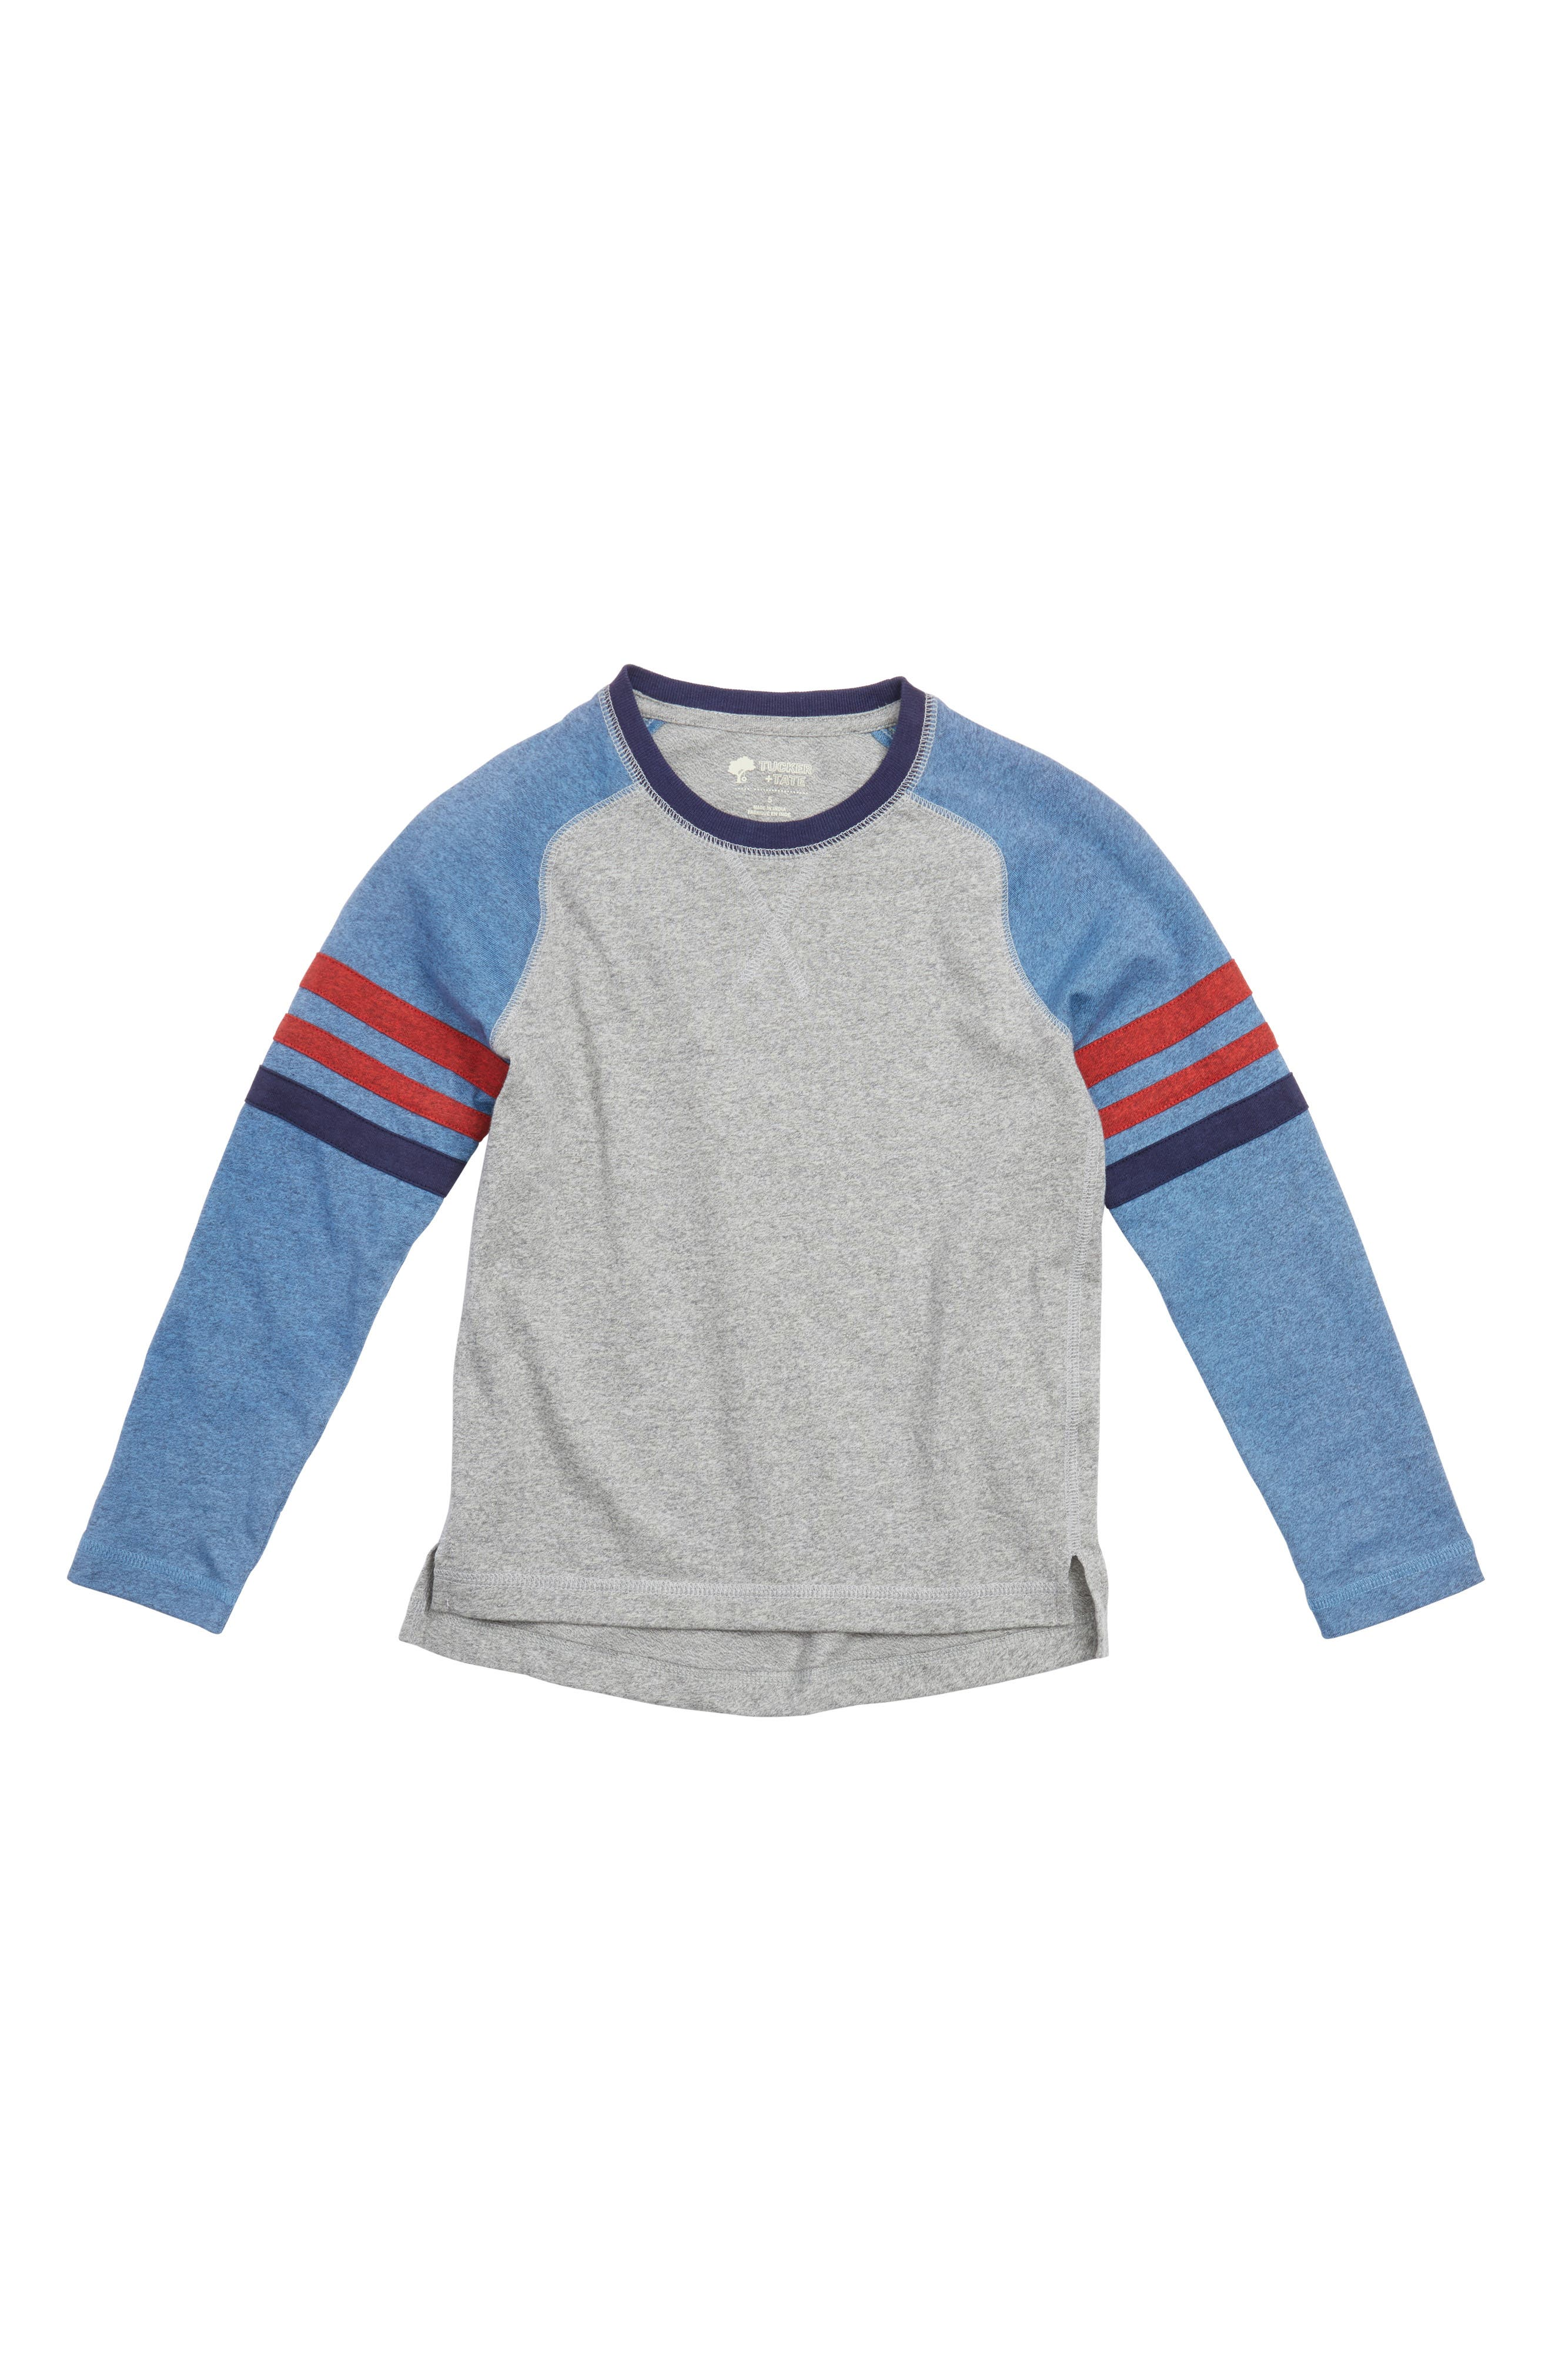 Varsity Raglan T-Shirt,                             Main thumbnail 1, color,                             Grey Medium Heather- Blue